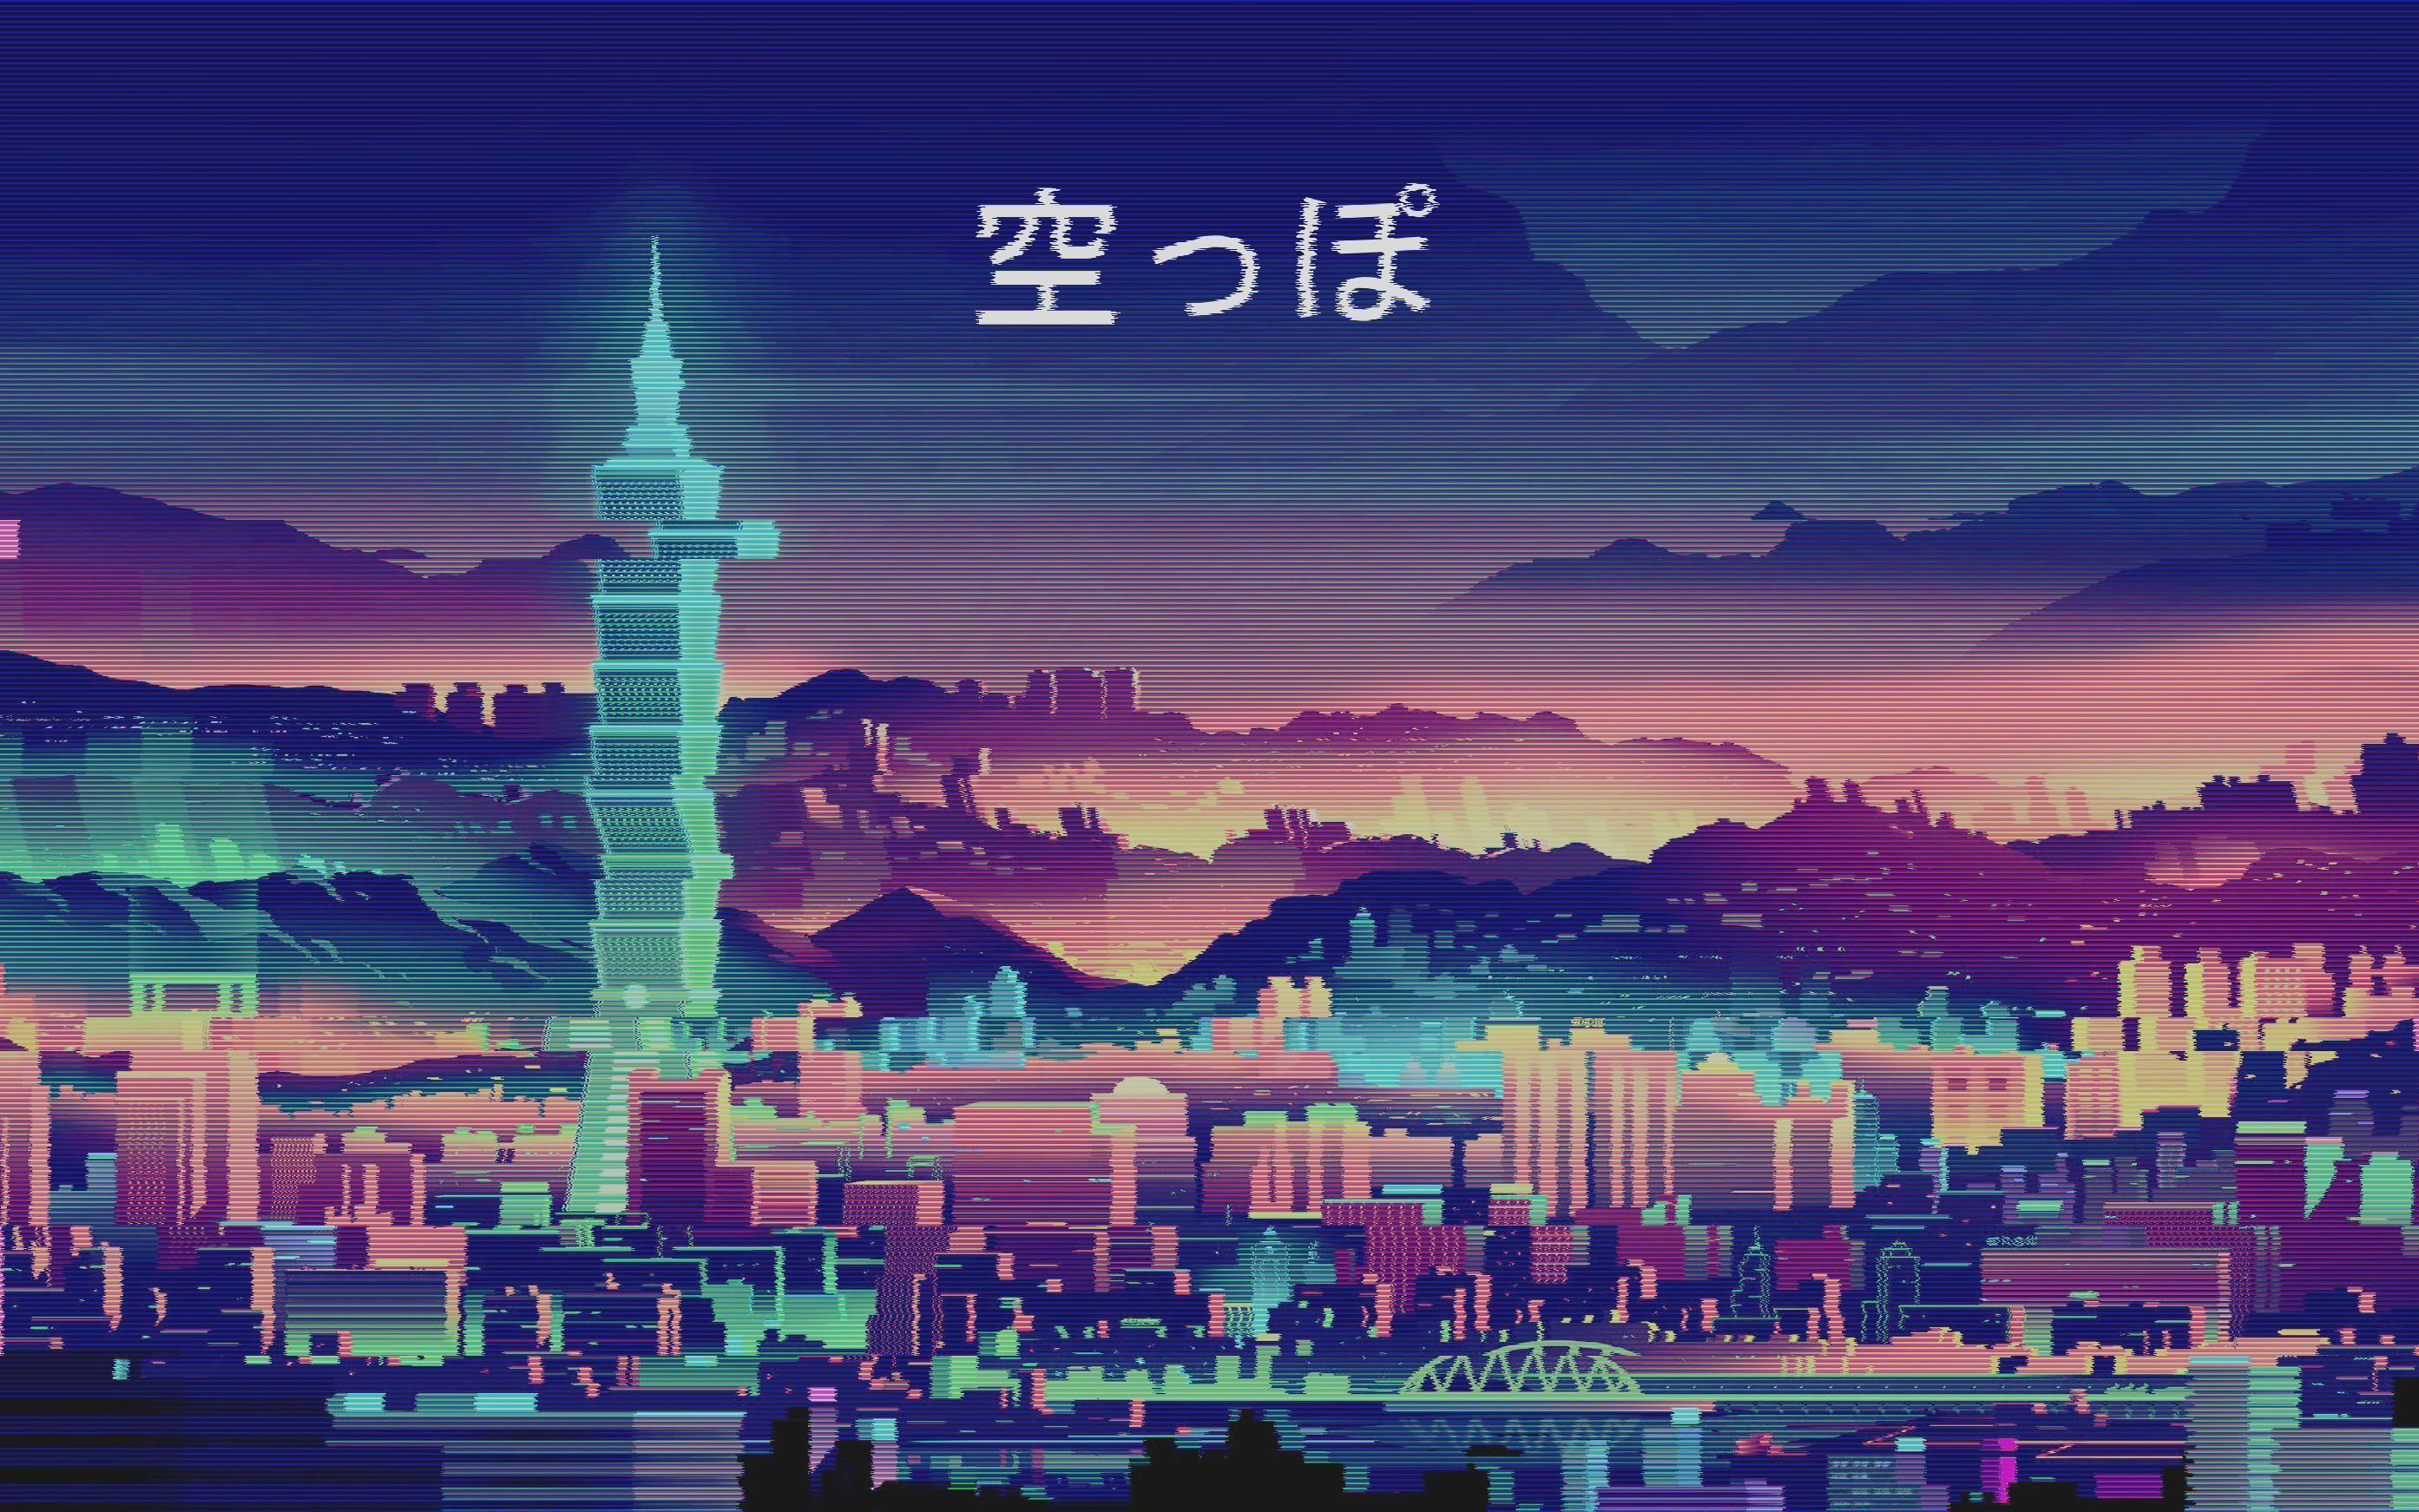 Anime Aesthetic Pc Wallpapers On Wallpaperdog